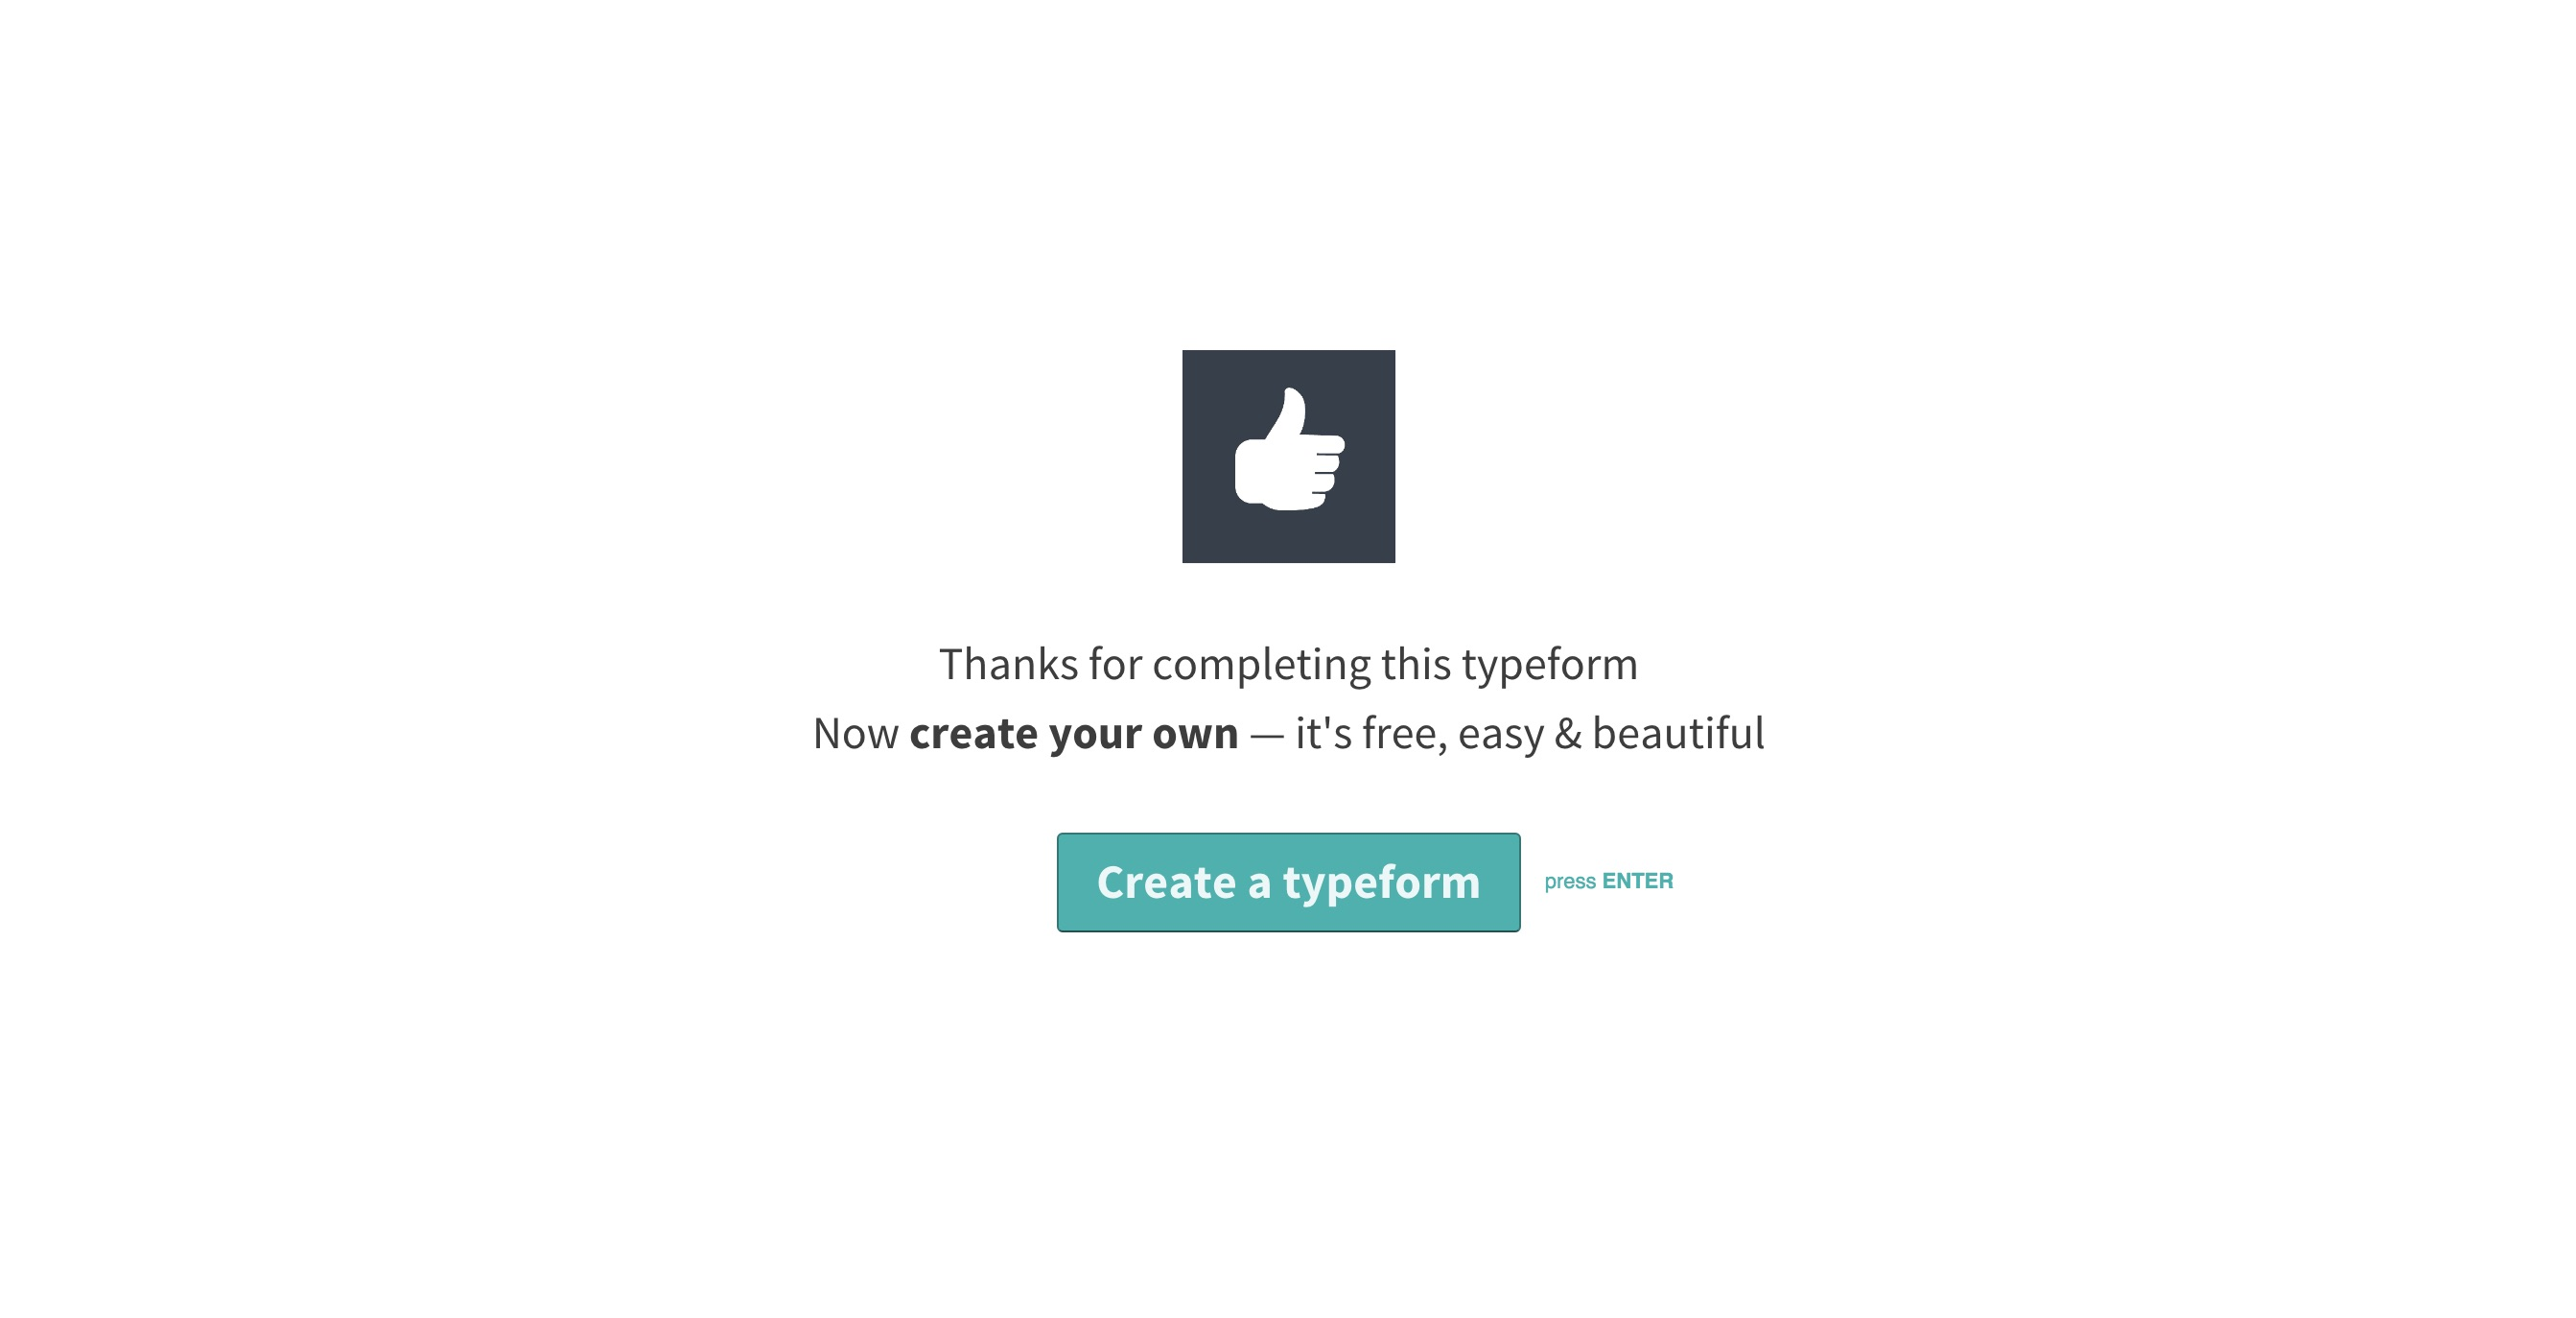 Typeform viral loop cta for freemium accounts